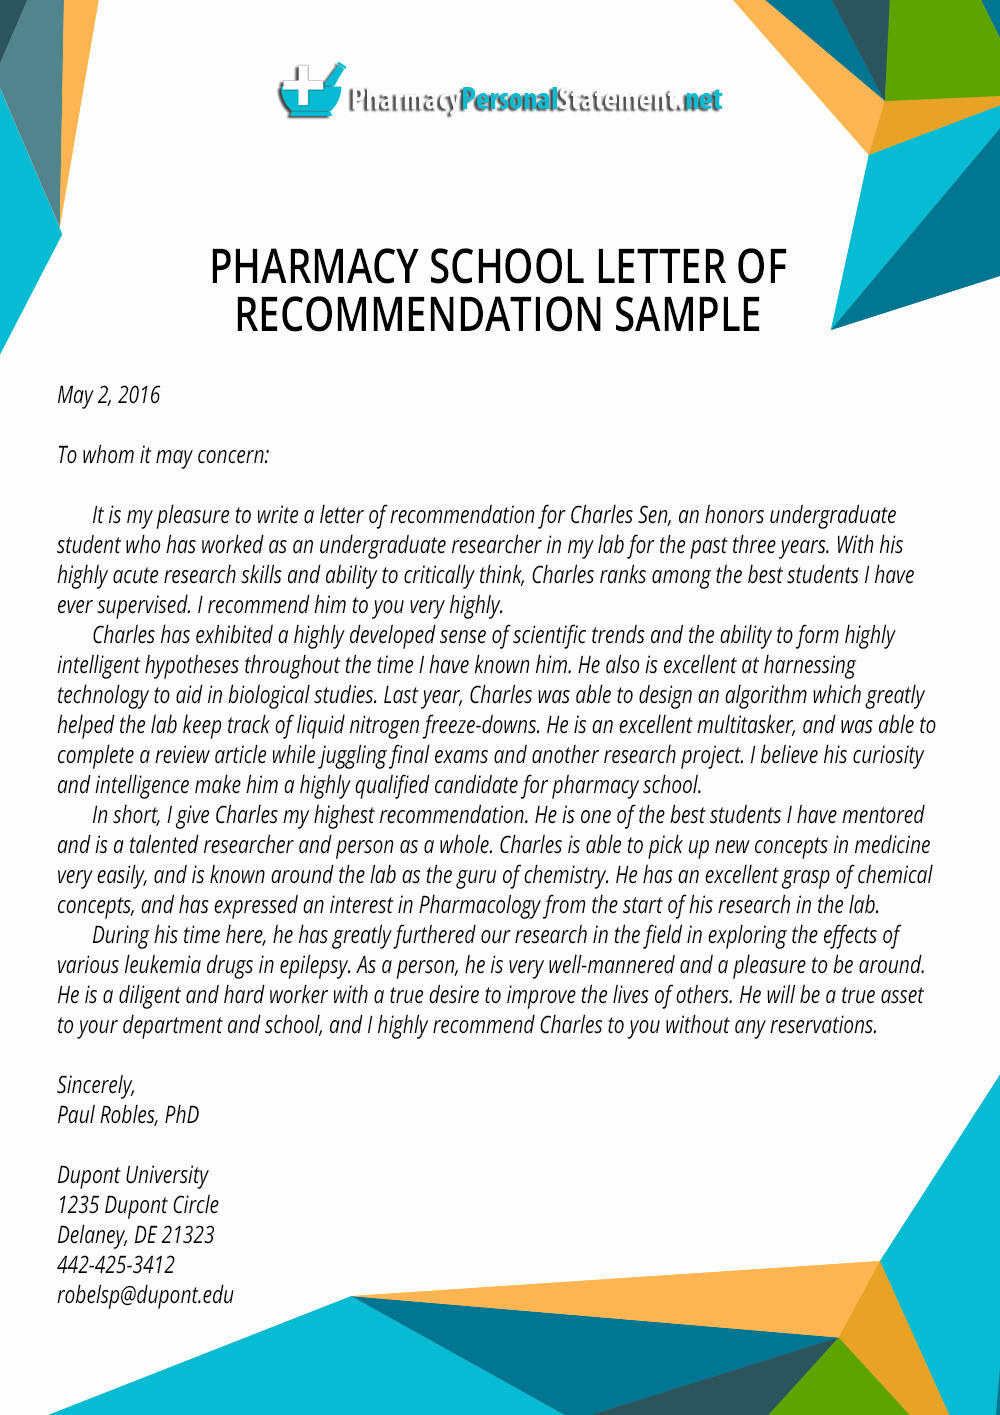 Pharmacist Letter Of Recommendation Sample Lovely Letter Of Re Mendation for Pharmacy School Writing